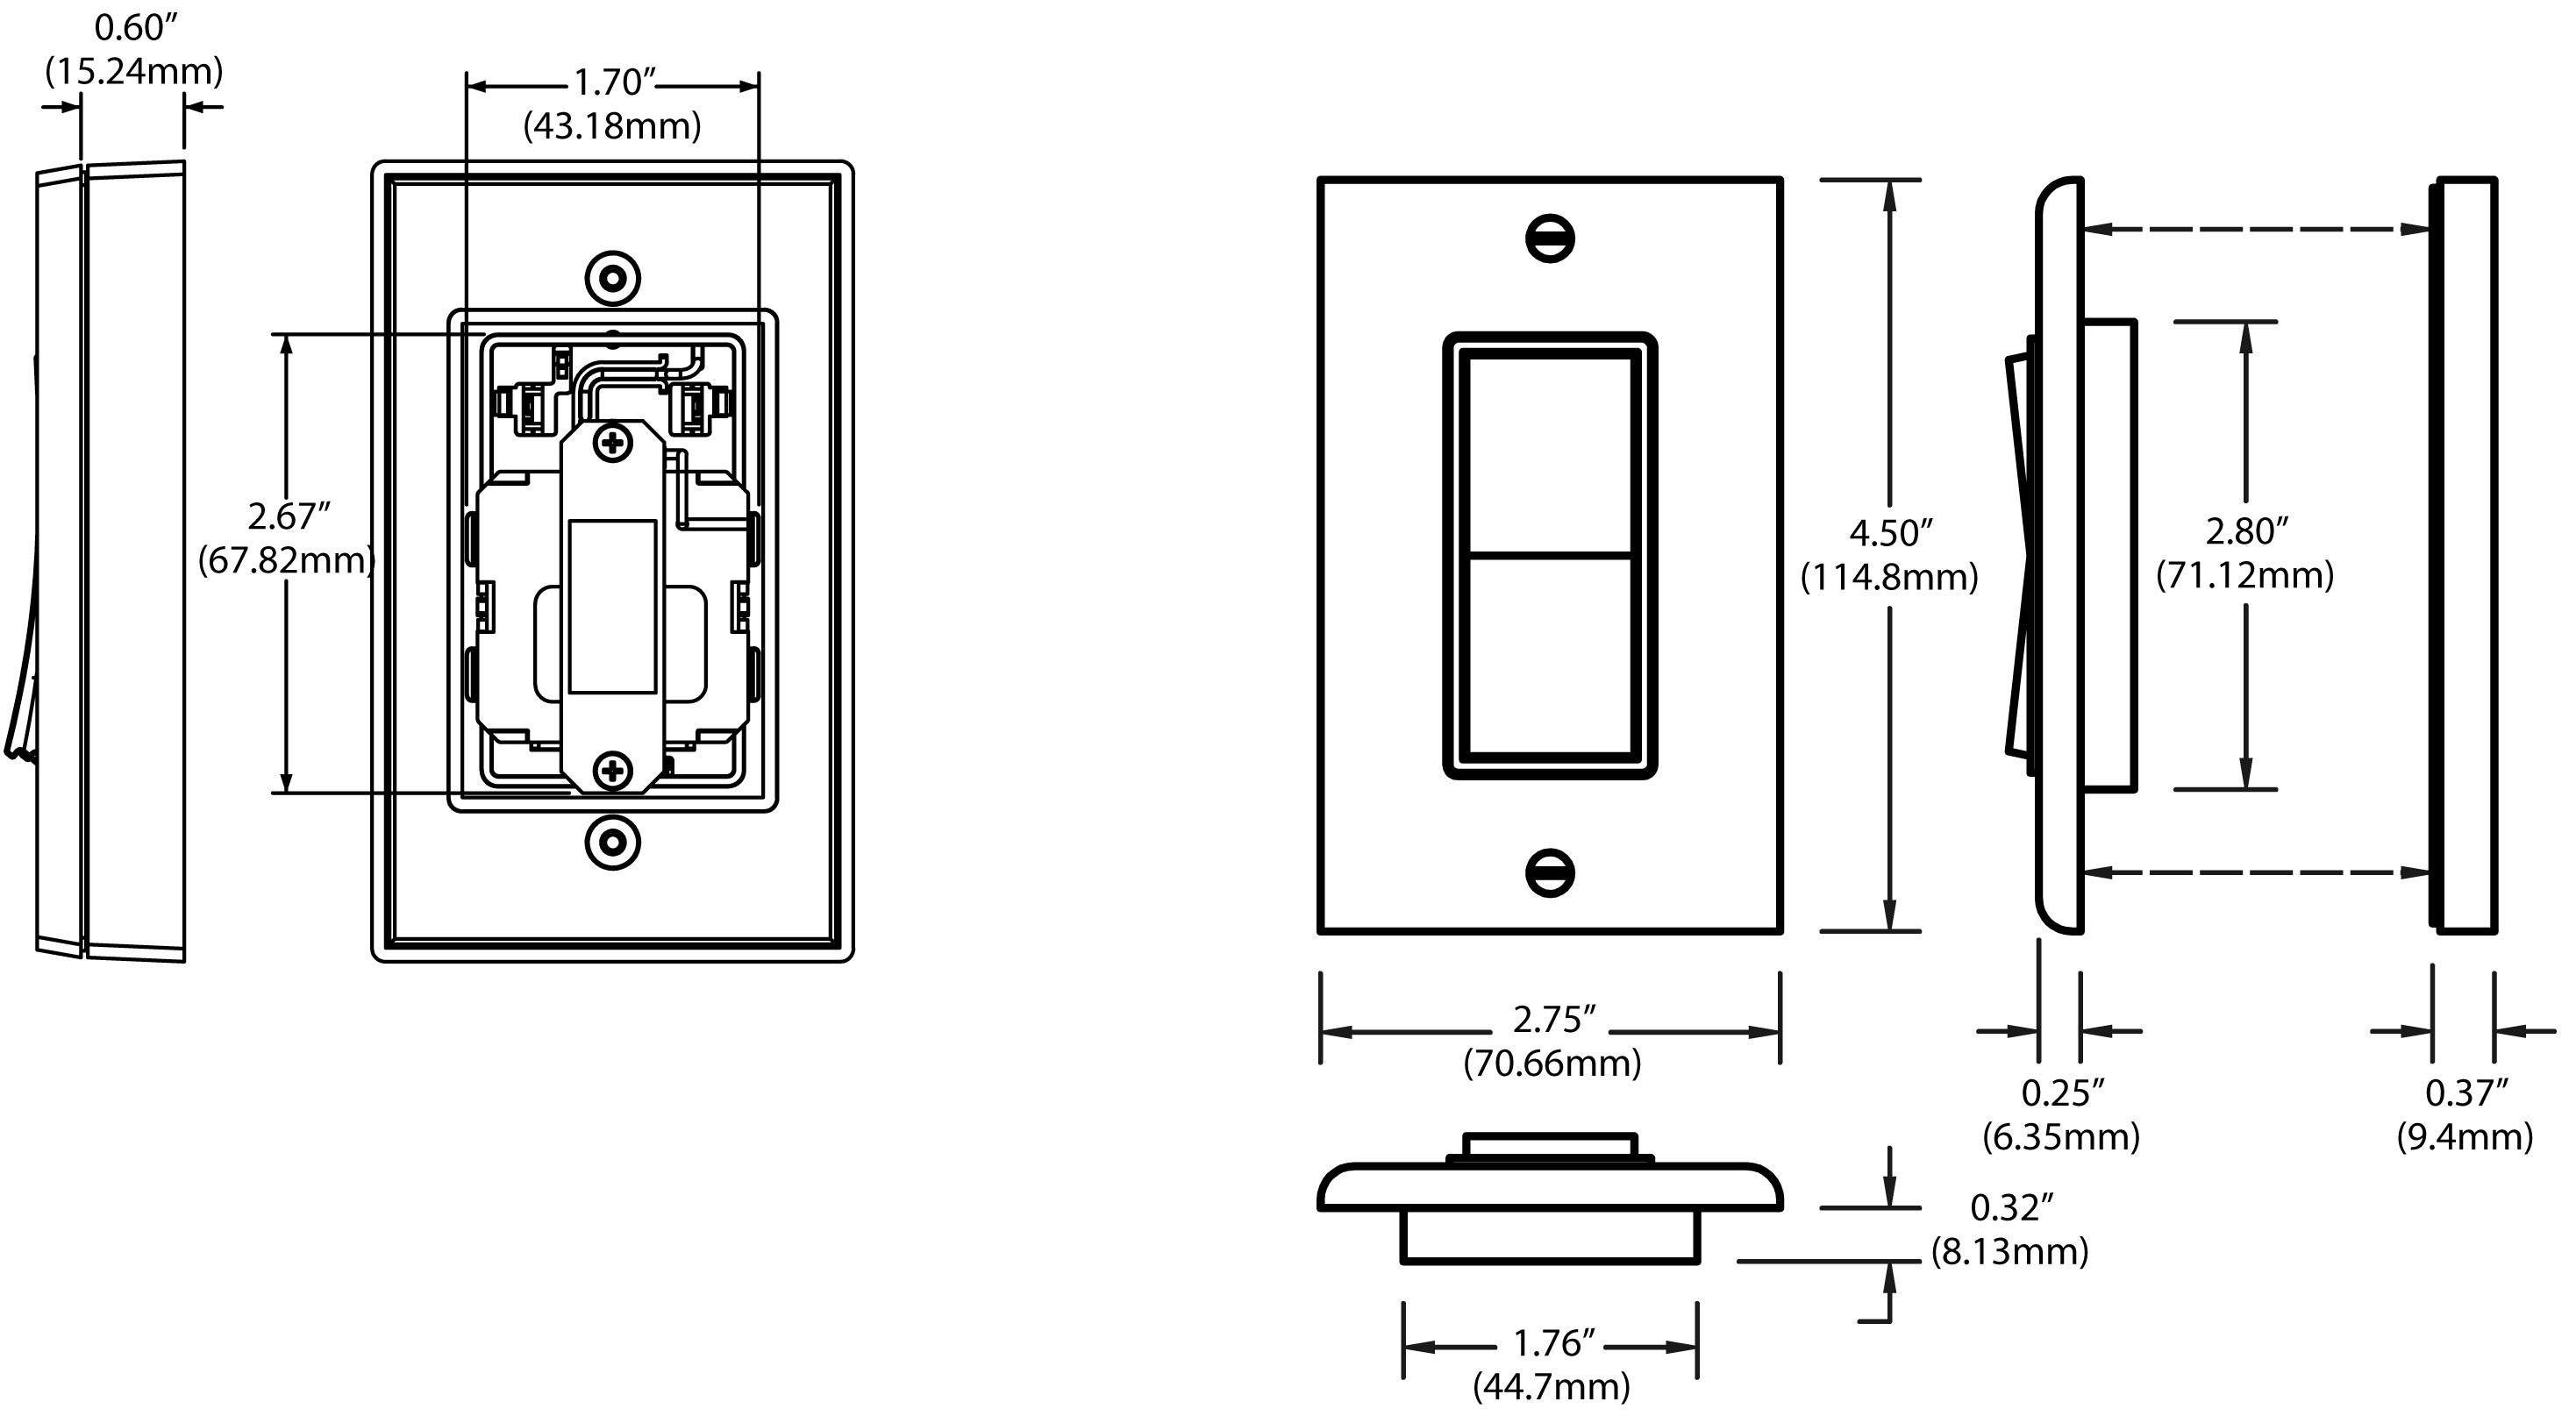 BottomILarge._V390024919_ leviton wss0s p0w wireless self powered remote switch, white leviton light switch wiring diagram at n-0.co